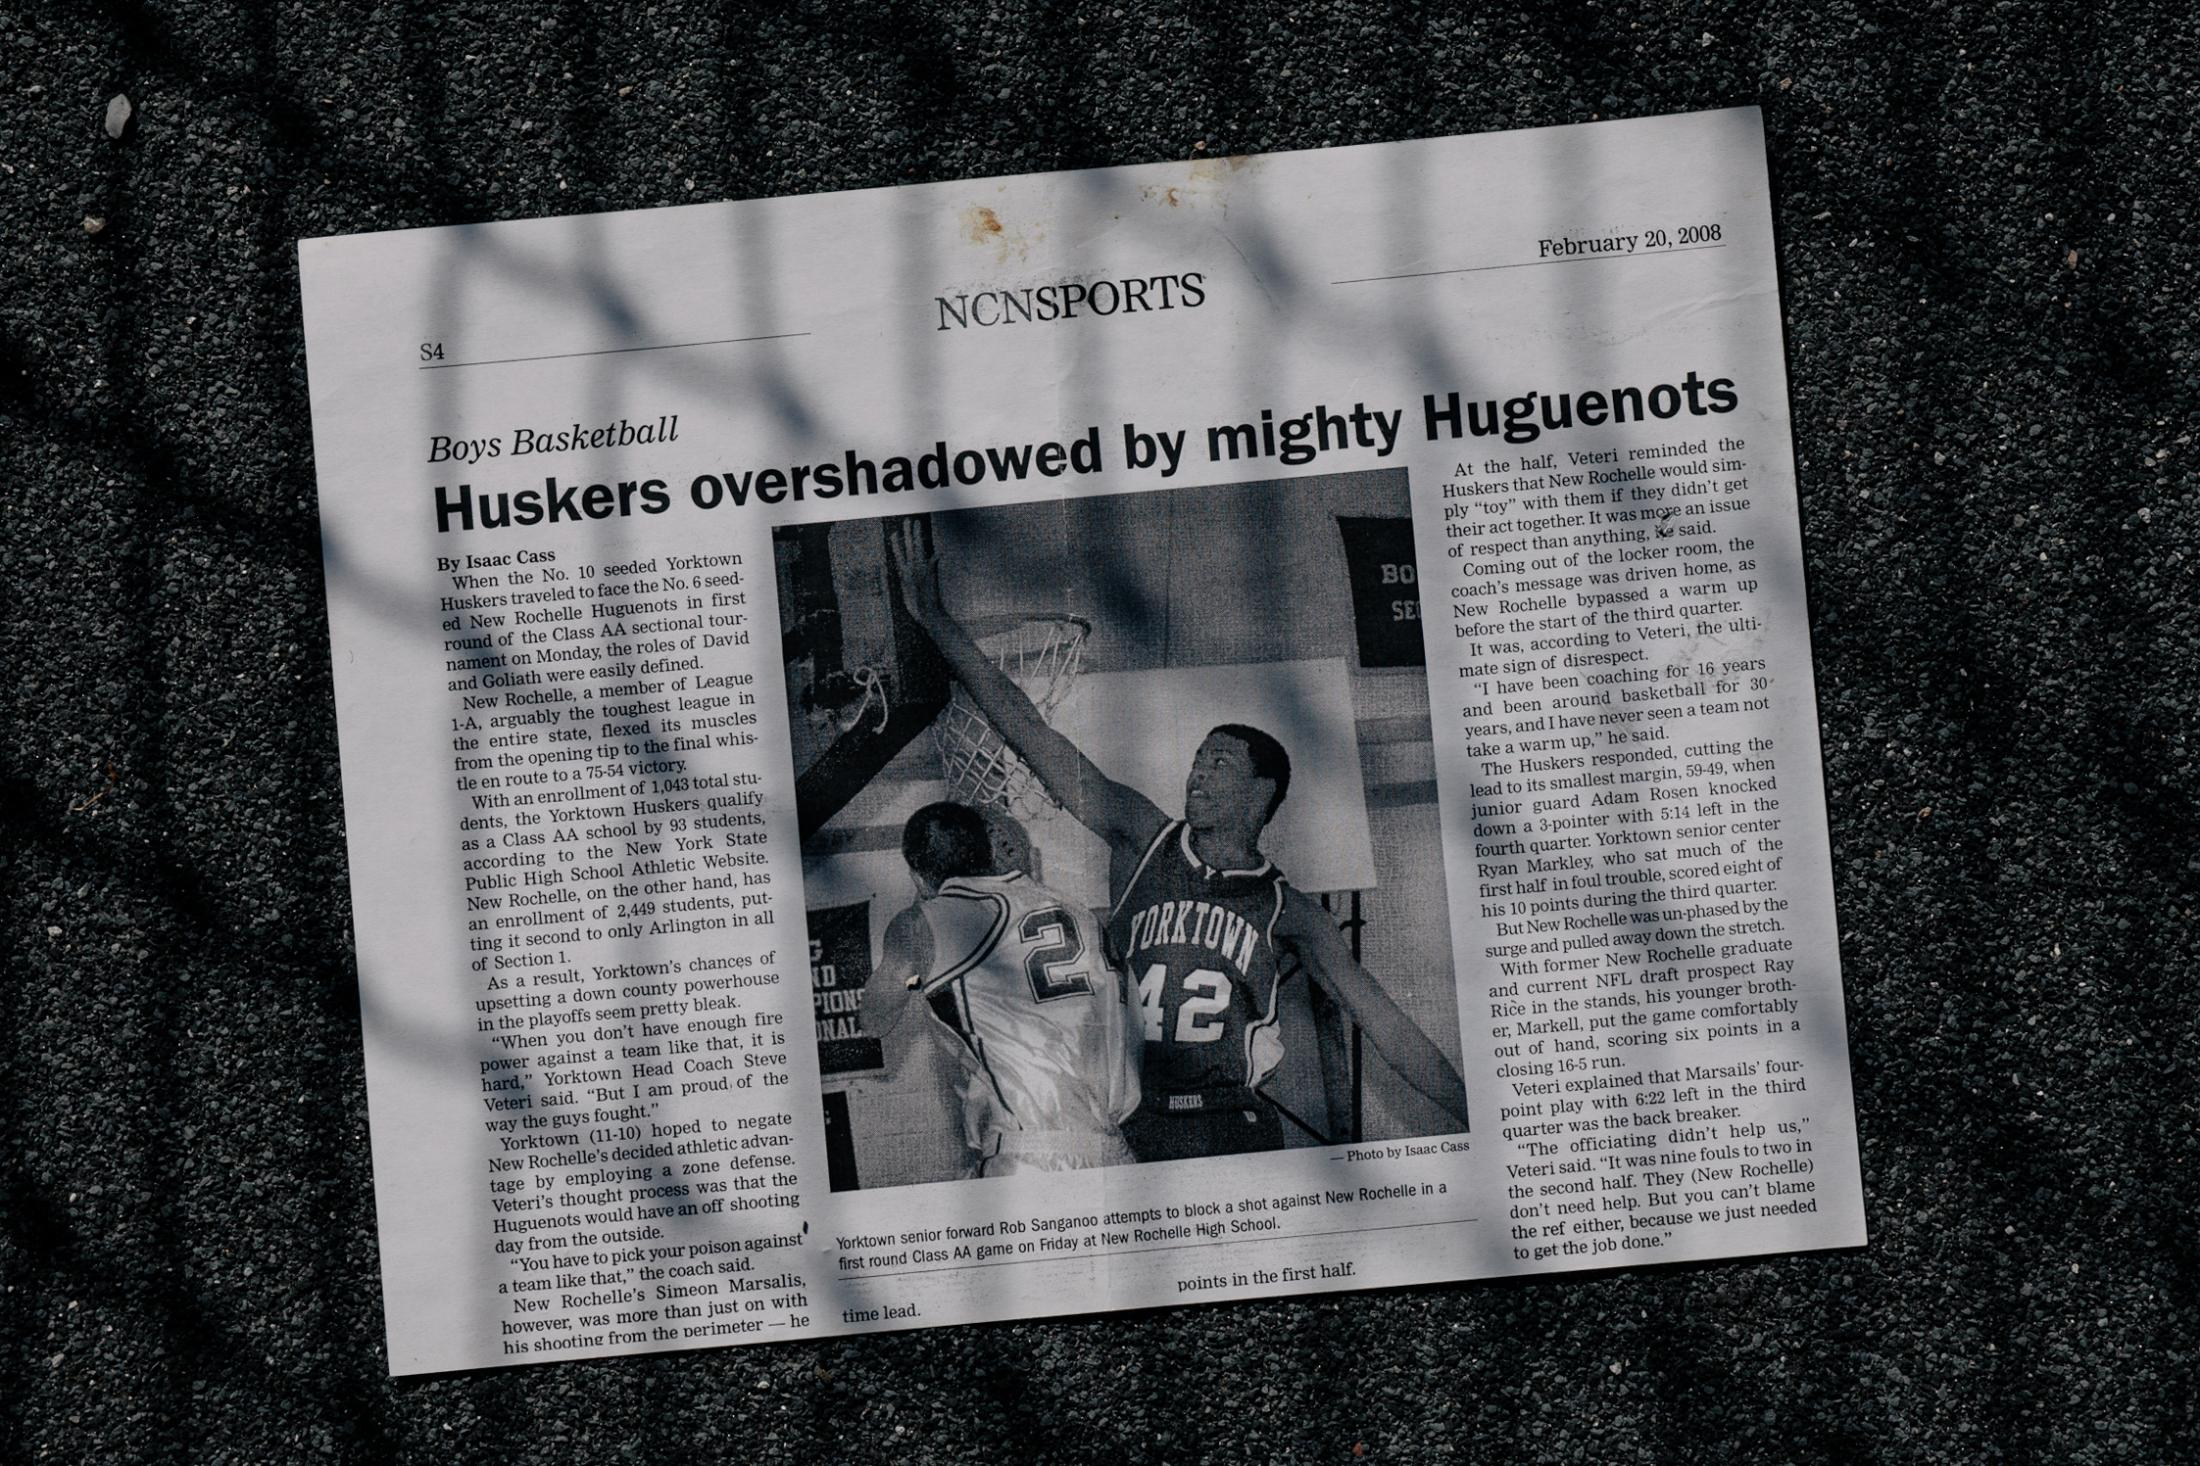 An article from a local newspaper published months before Robert was diagnosed with Relapsing-Remitting Multiple Sclerosis displays Robert playing basketball for his high school basketball.